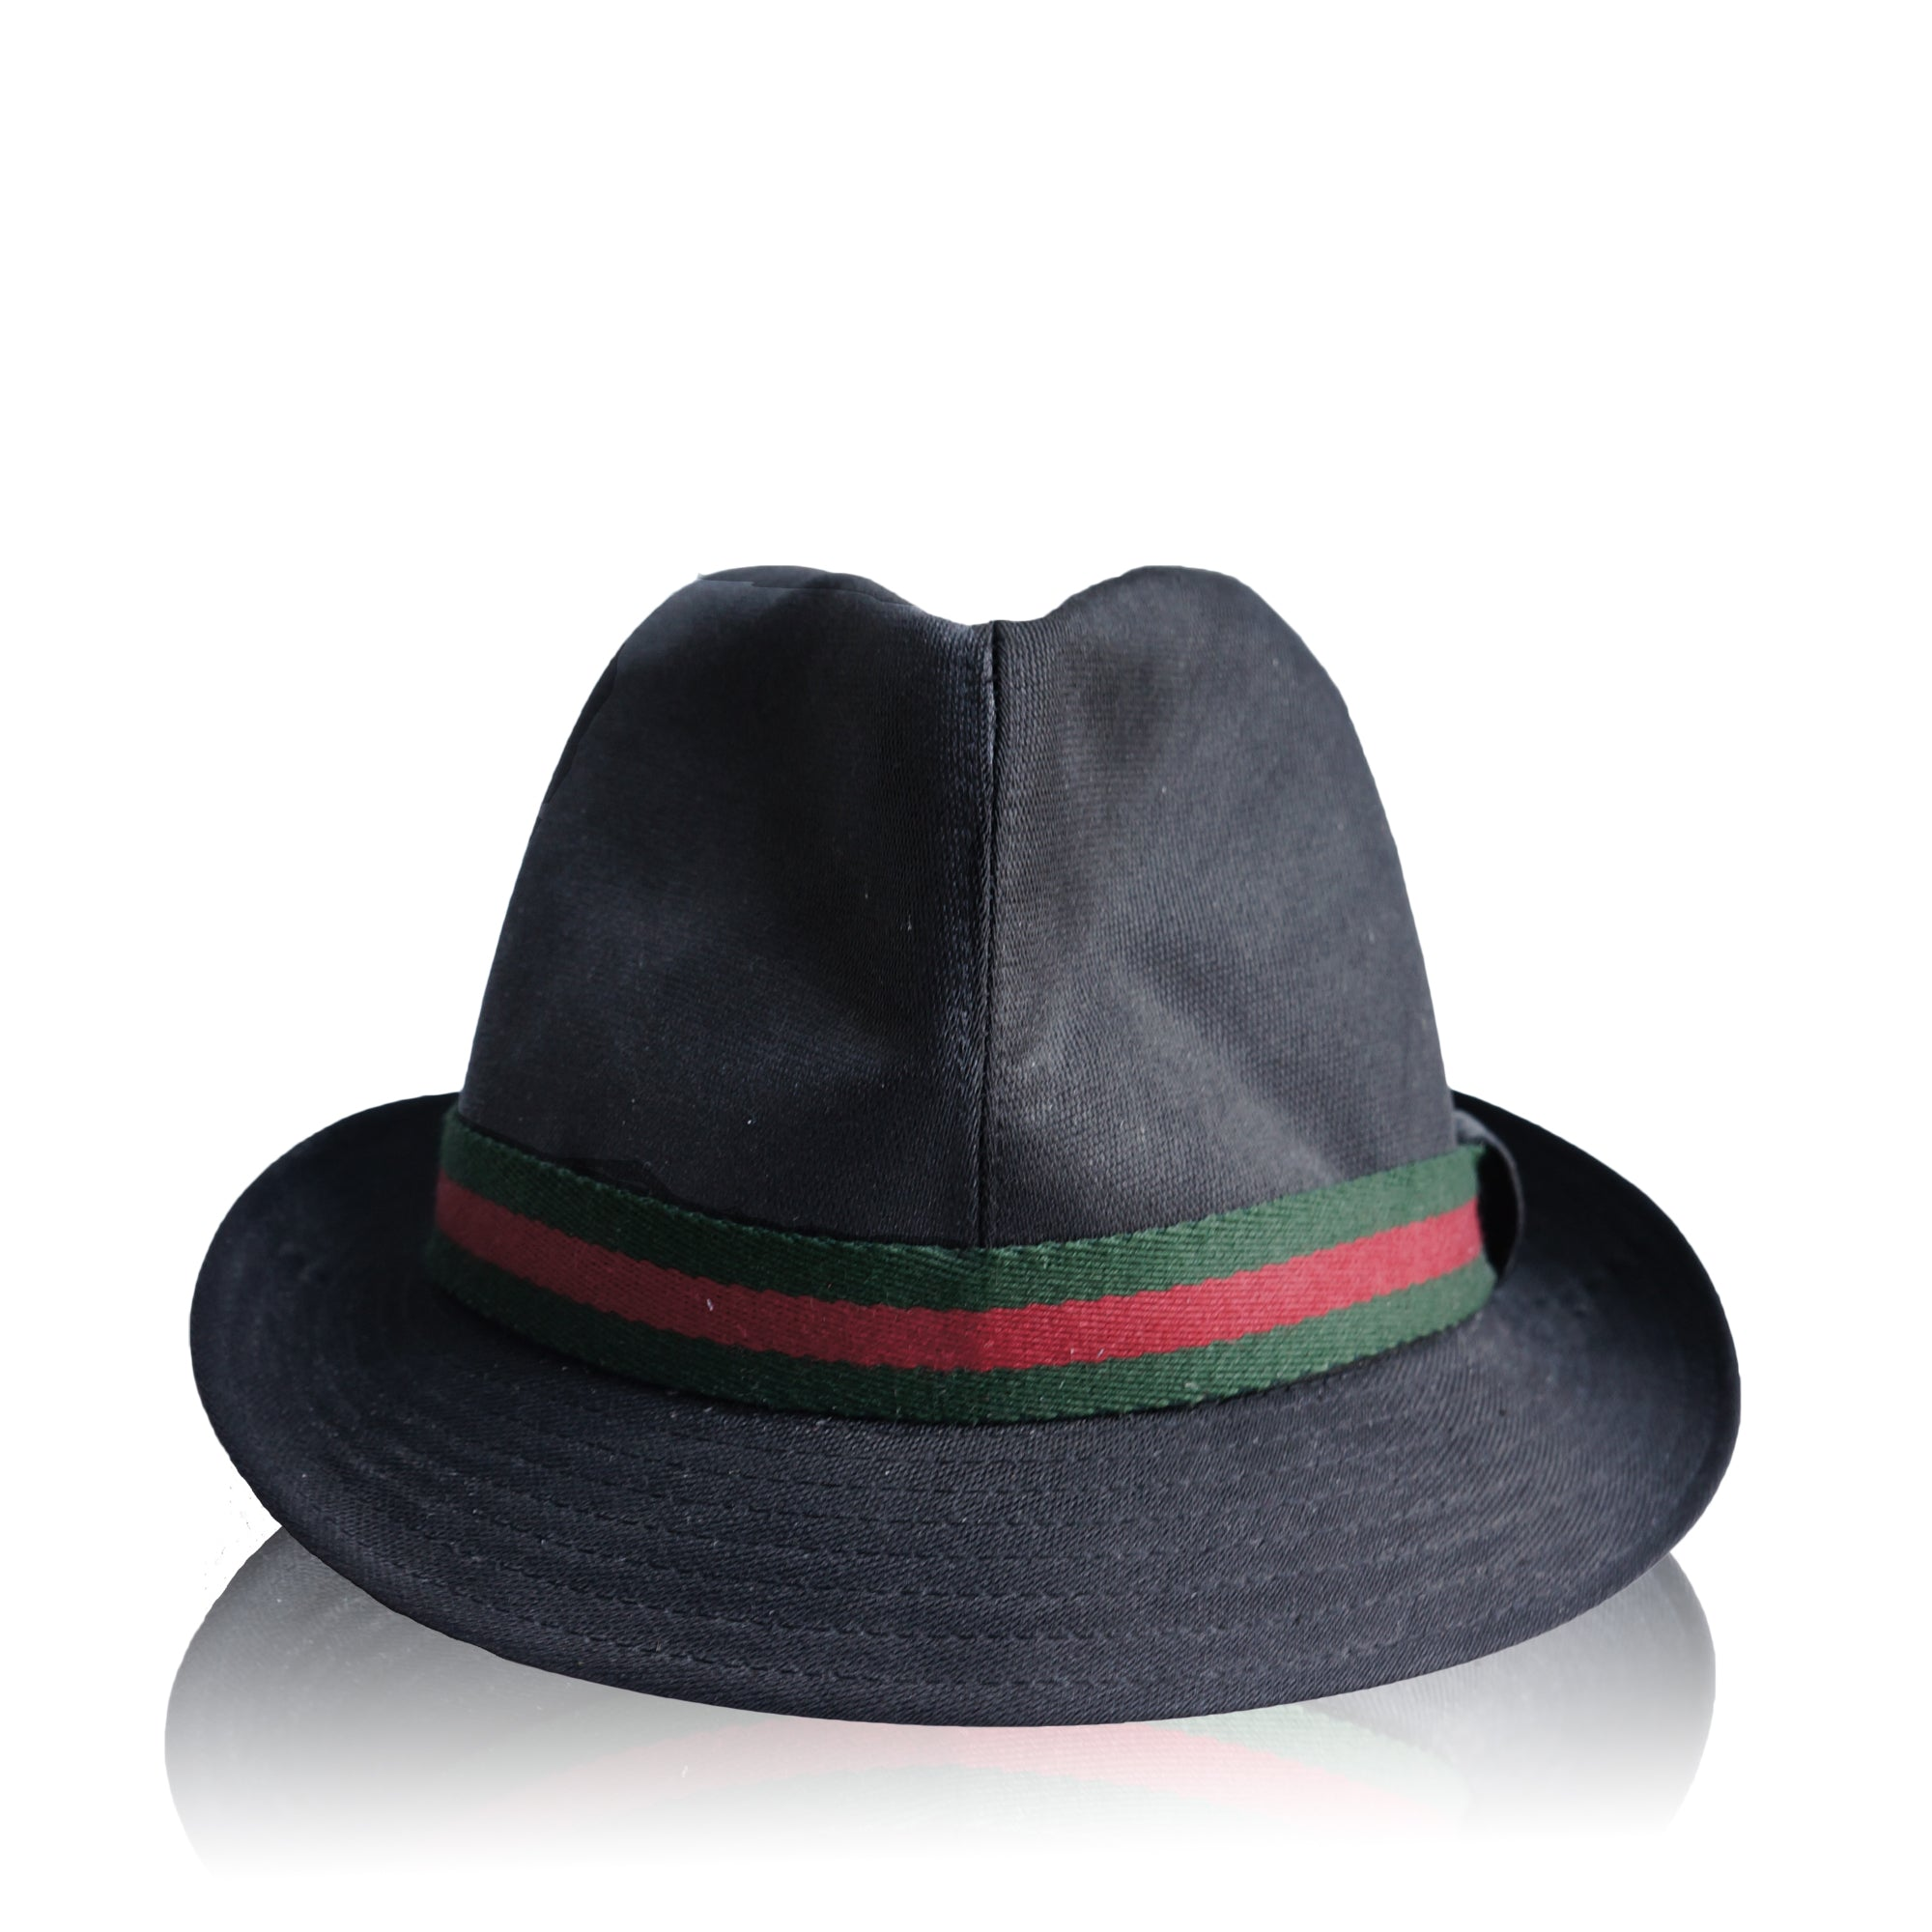 829c1cf55bf GUCCI WEB CANVAS FEDORA Shop online the best value on authentic designer  used preowned consignment on ...